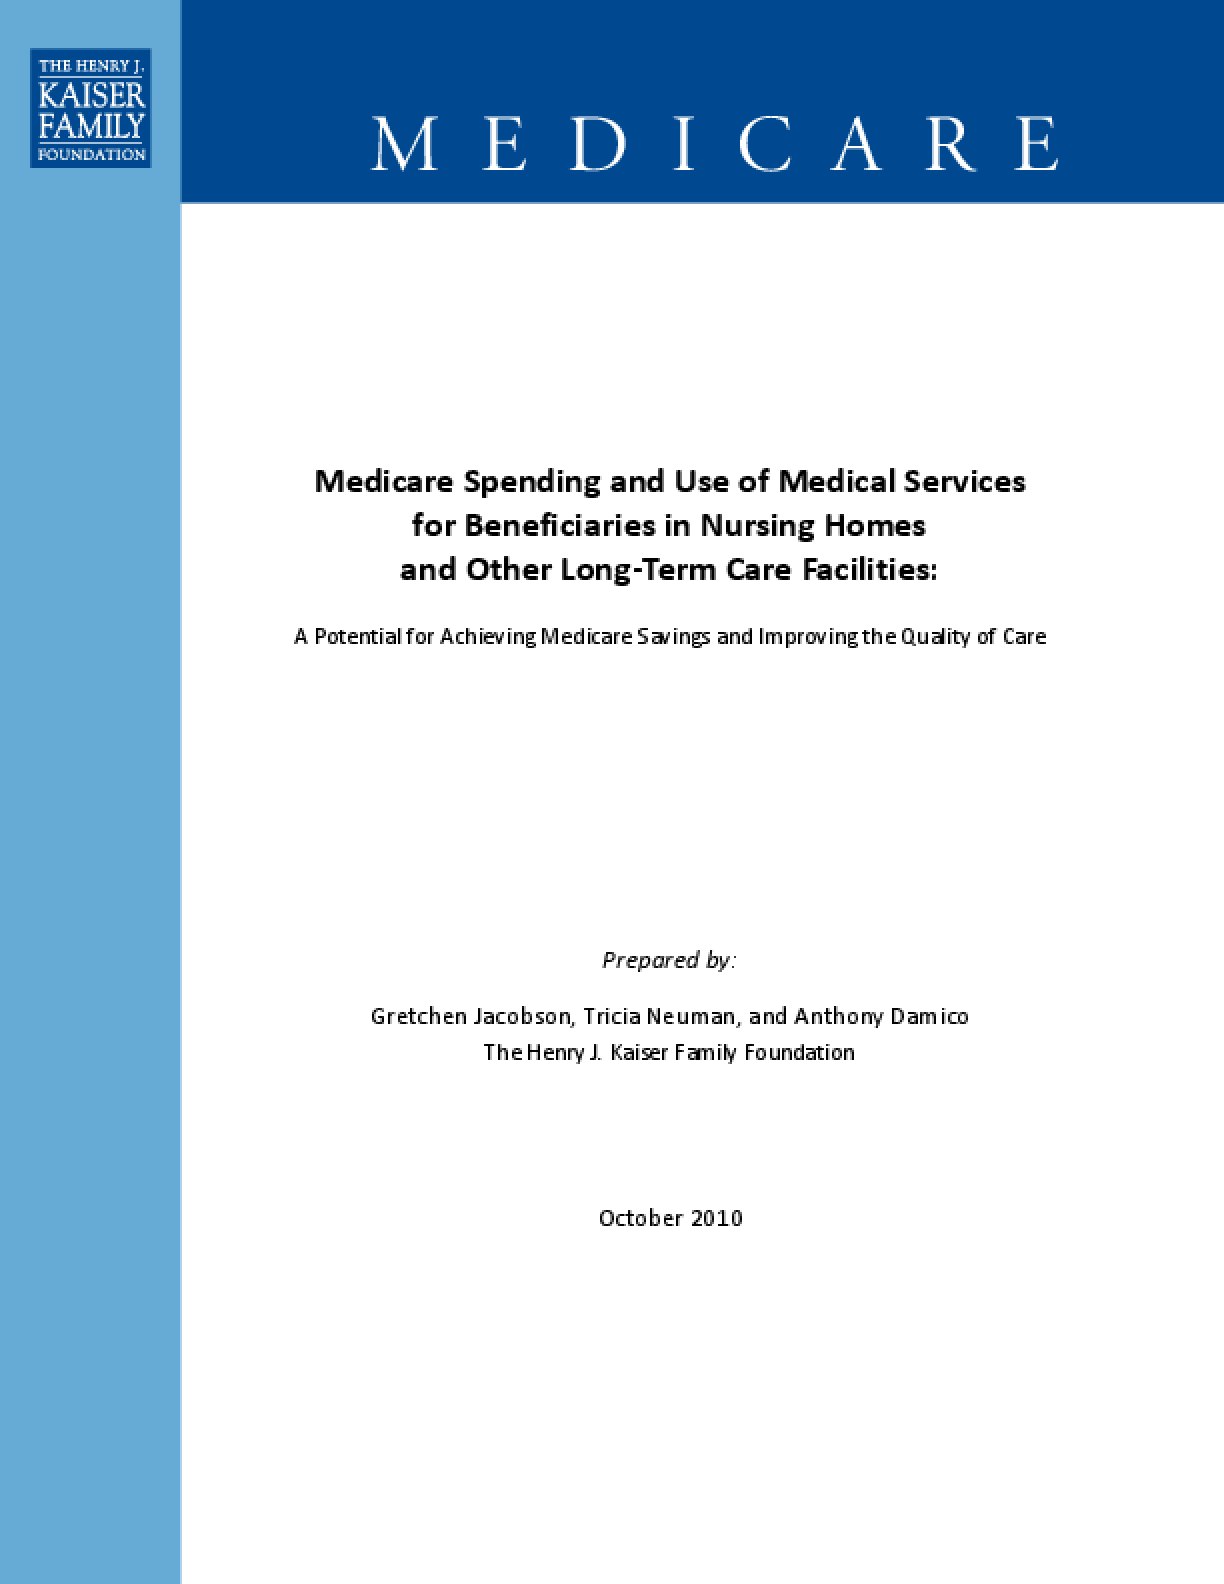 Medicare Spending and Use of Medical Services for Beneficiaries in Nursing Homes and Other Long-Term Care Facilities